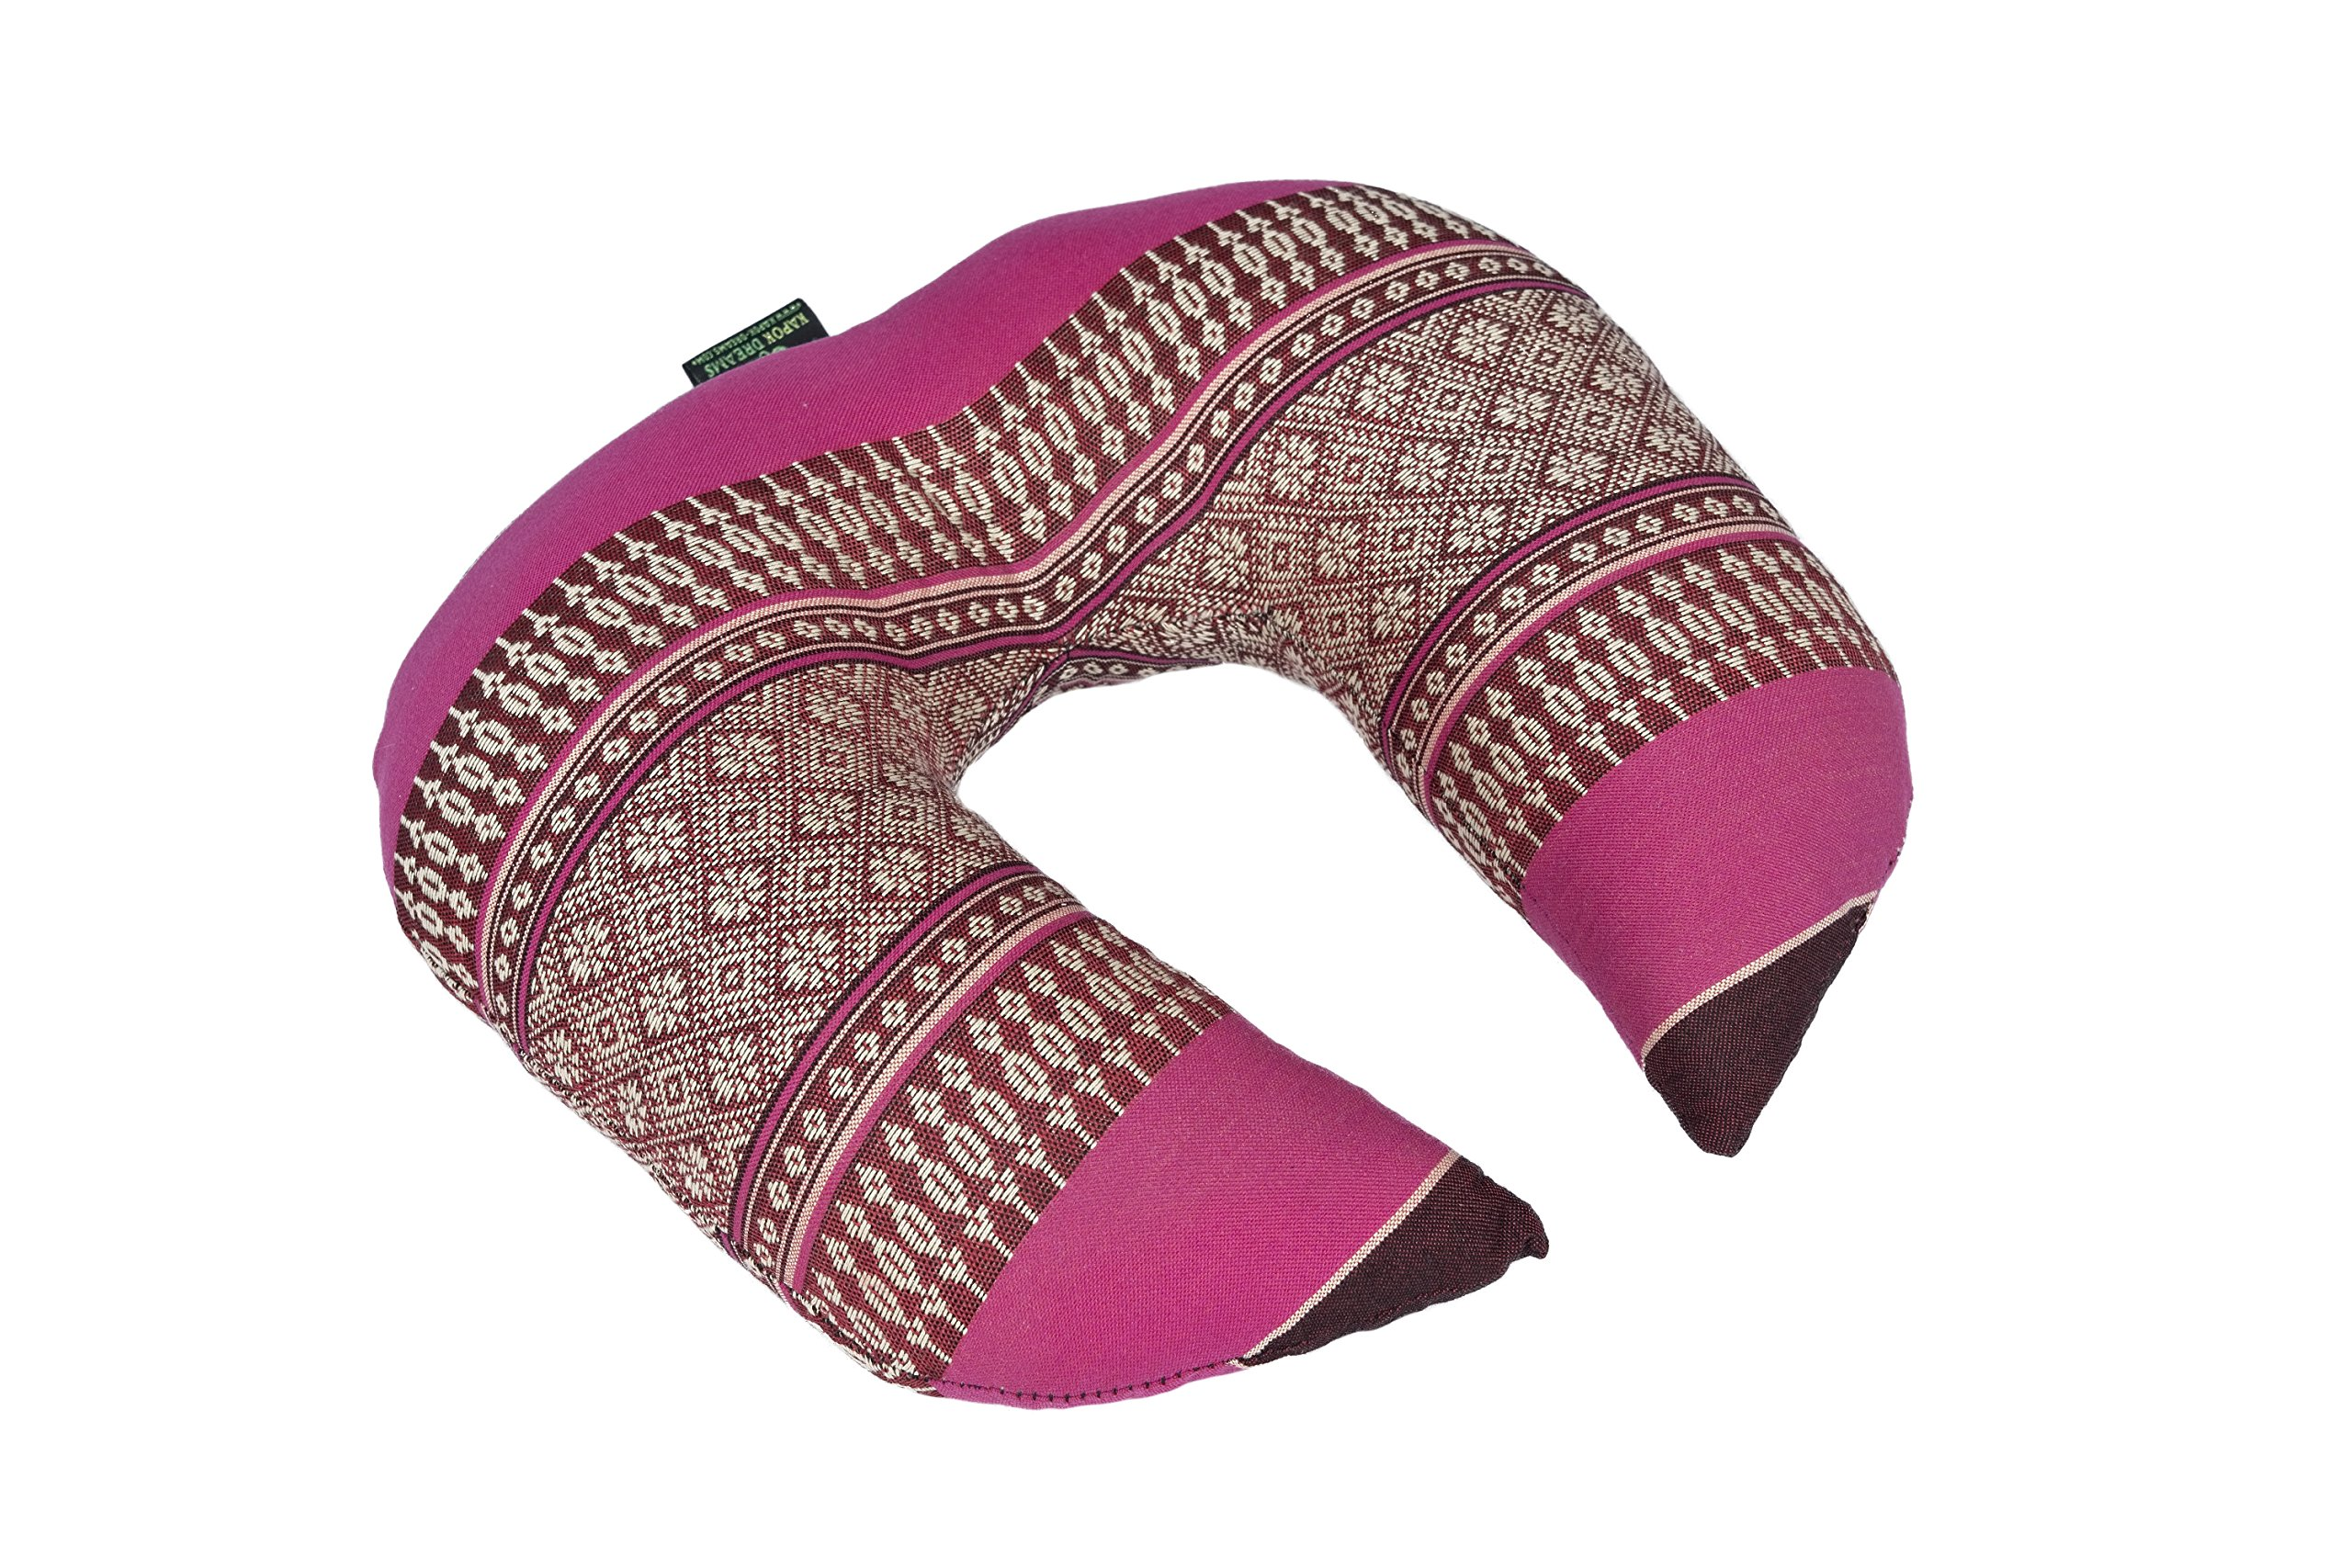 Kapok Dreams Face Cradle Cushion, 12''x11''x4'', Firm Support Pillow 100% Kapok Filled Head Rest (Burgundy Red & Pink) Thai Design.Neck Cushion